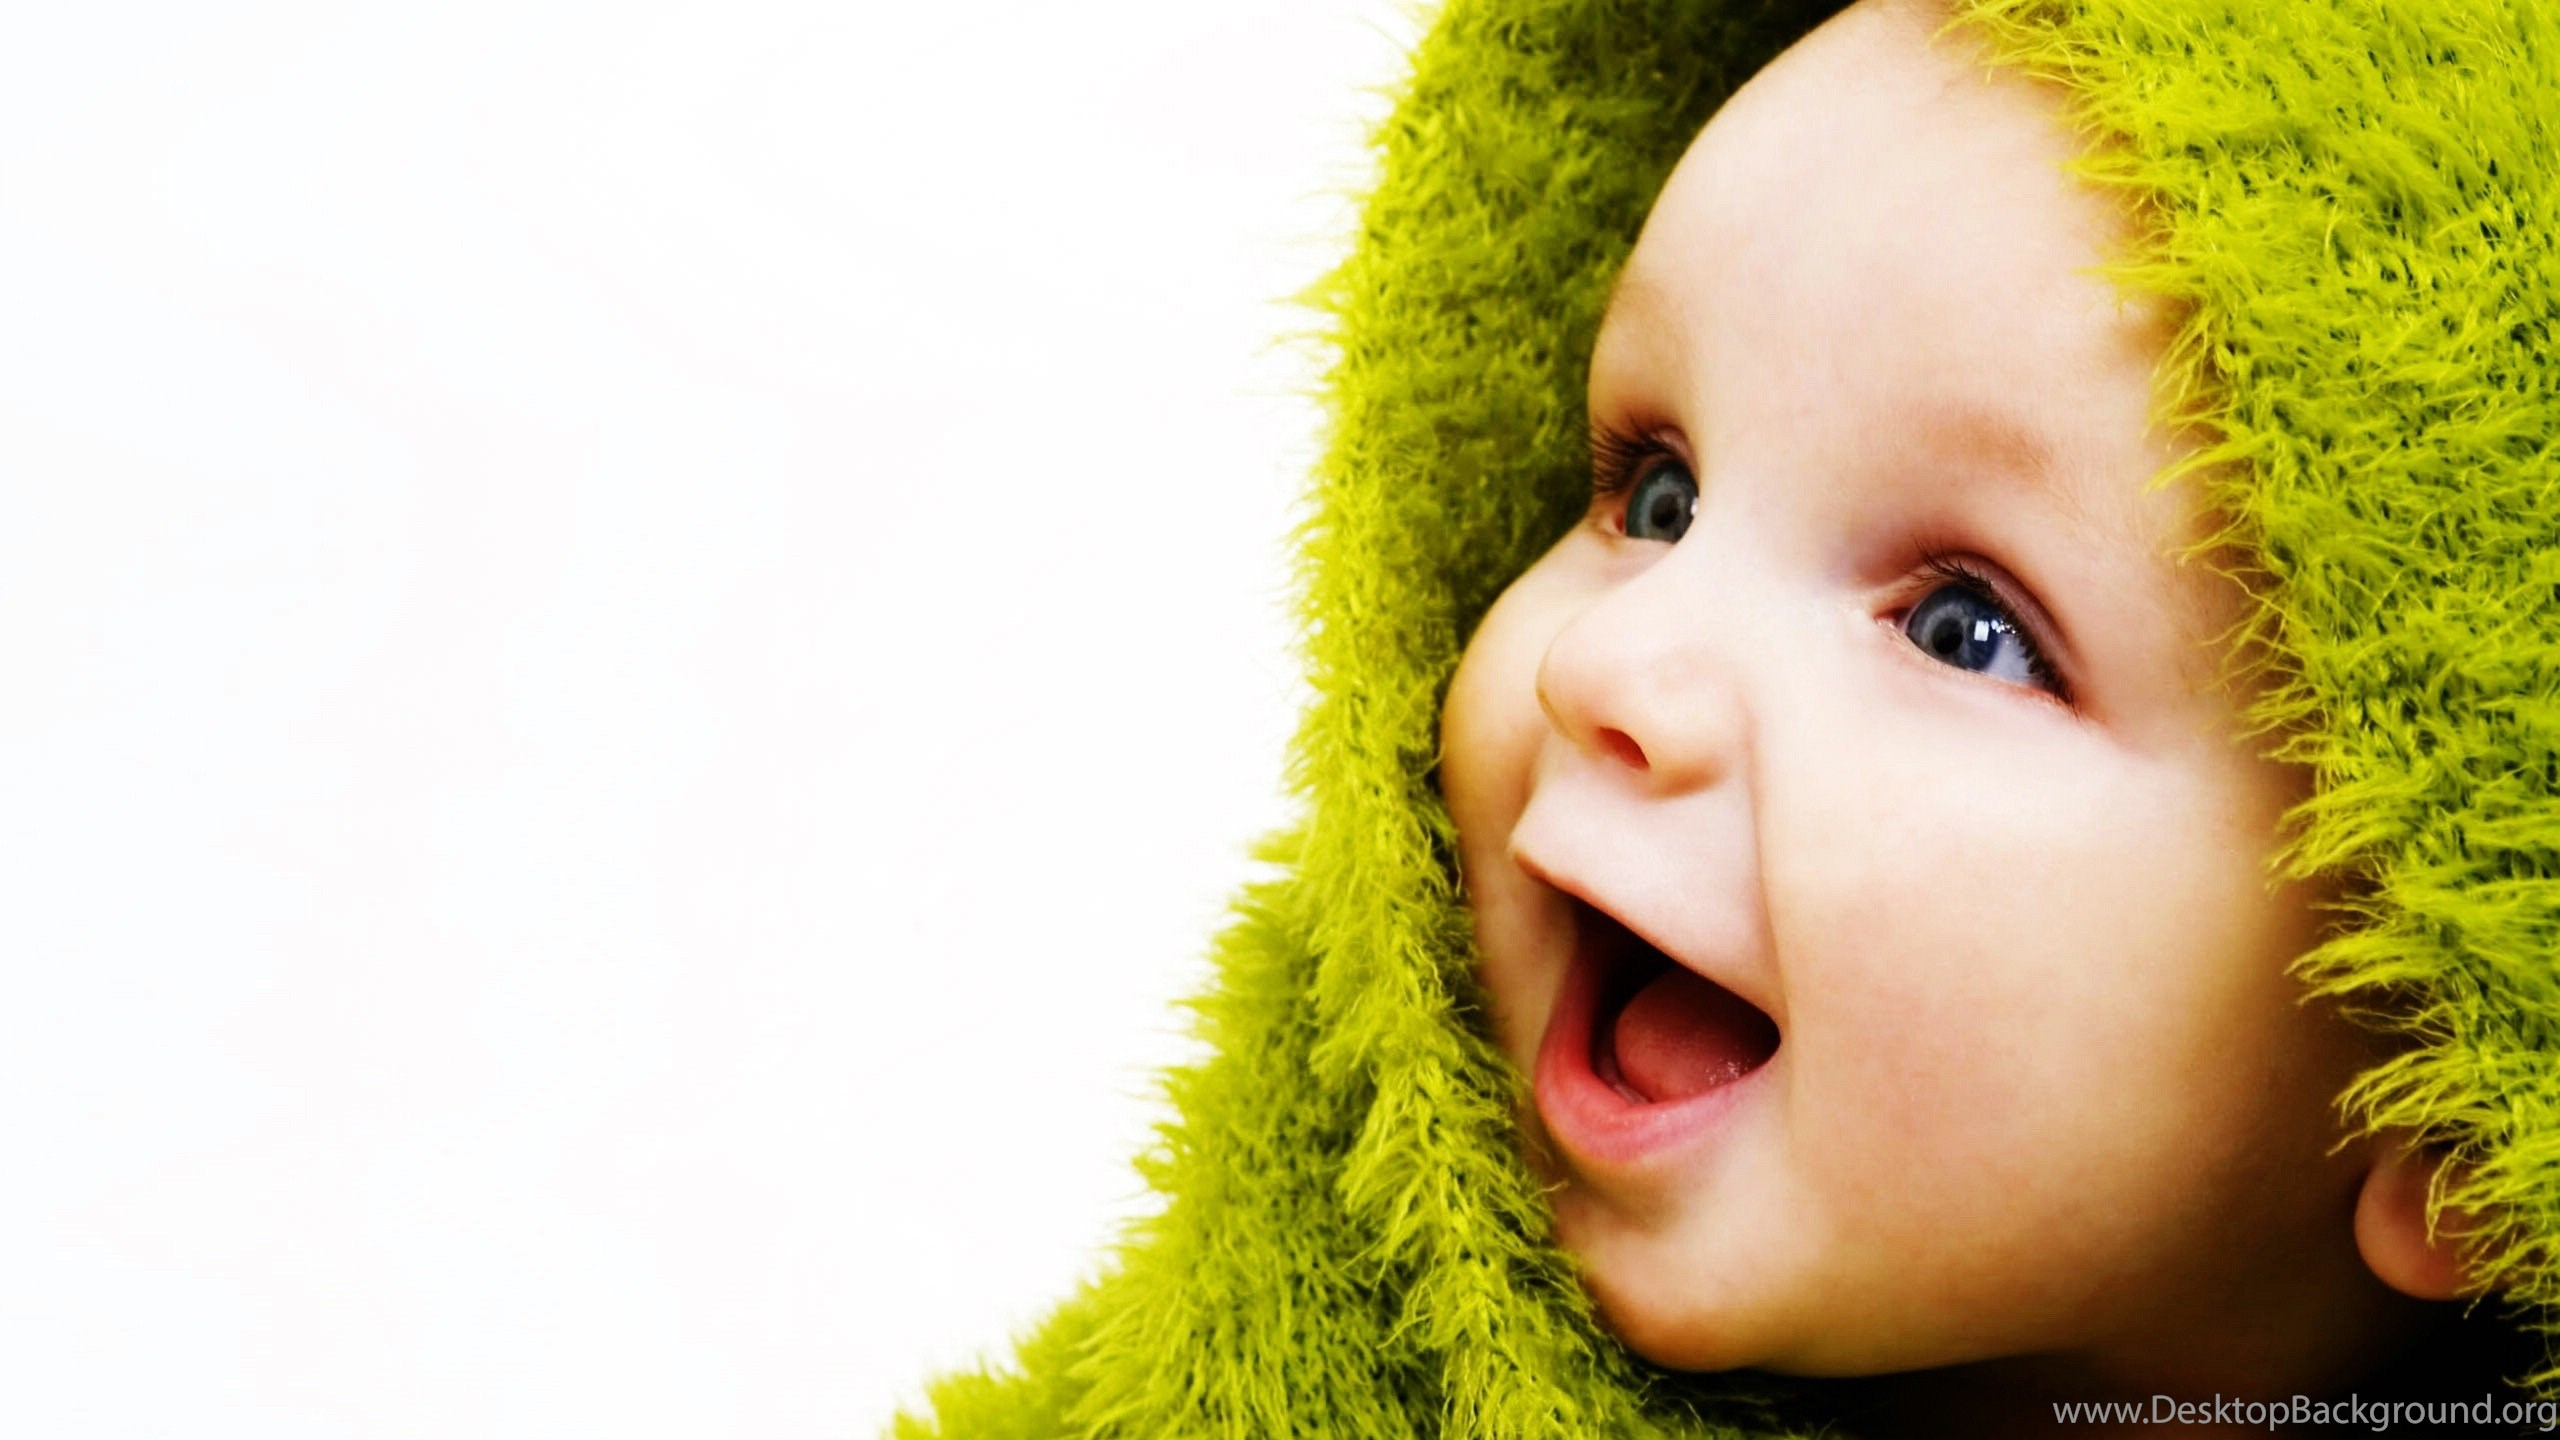 Download Free Hd Wallpapers Of Cute Babies The Quotes Land Desktop